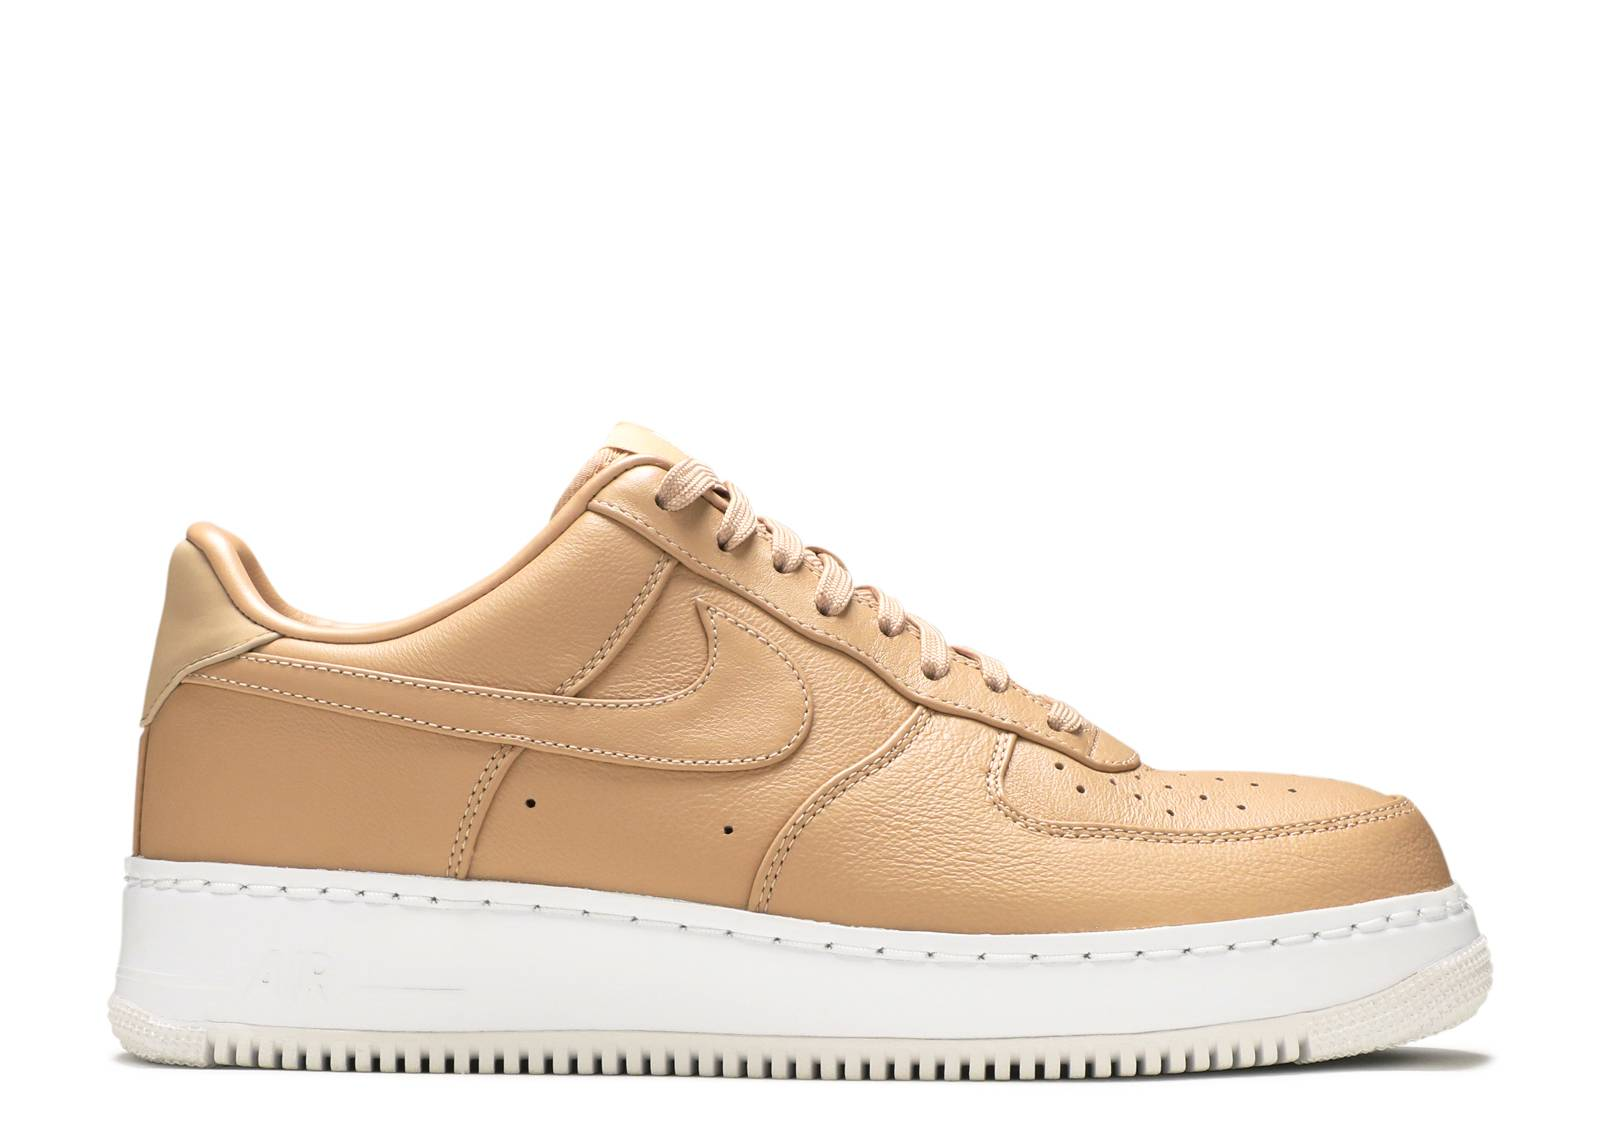 ... australia nikelab air force 1 low nike 555106 200 vachetta tan vchtt  tan white flight club 1bb2c5b66